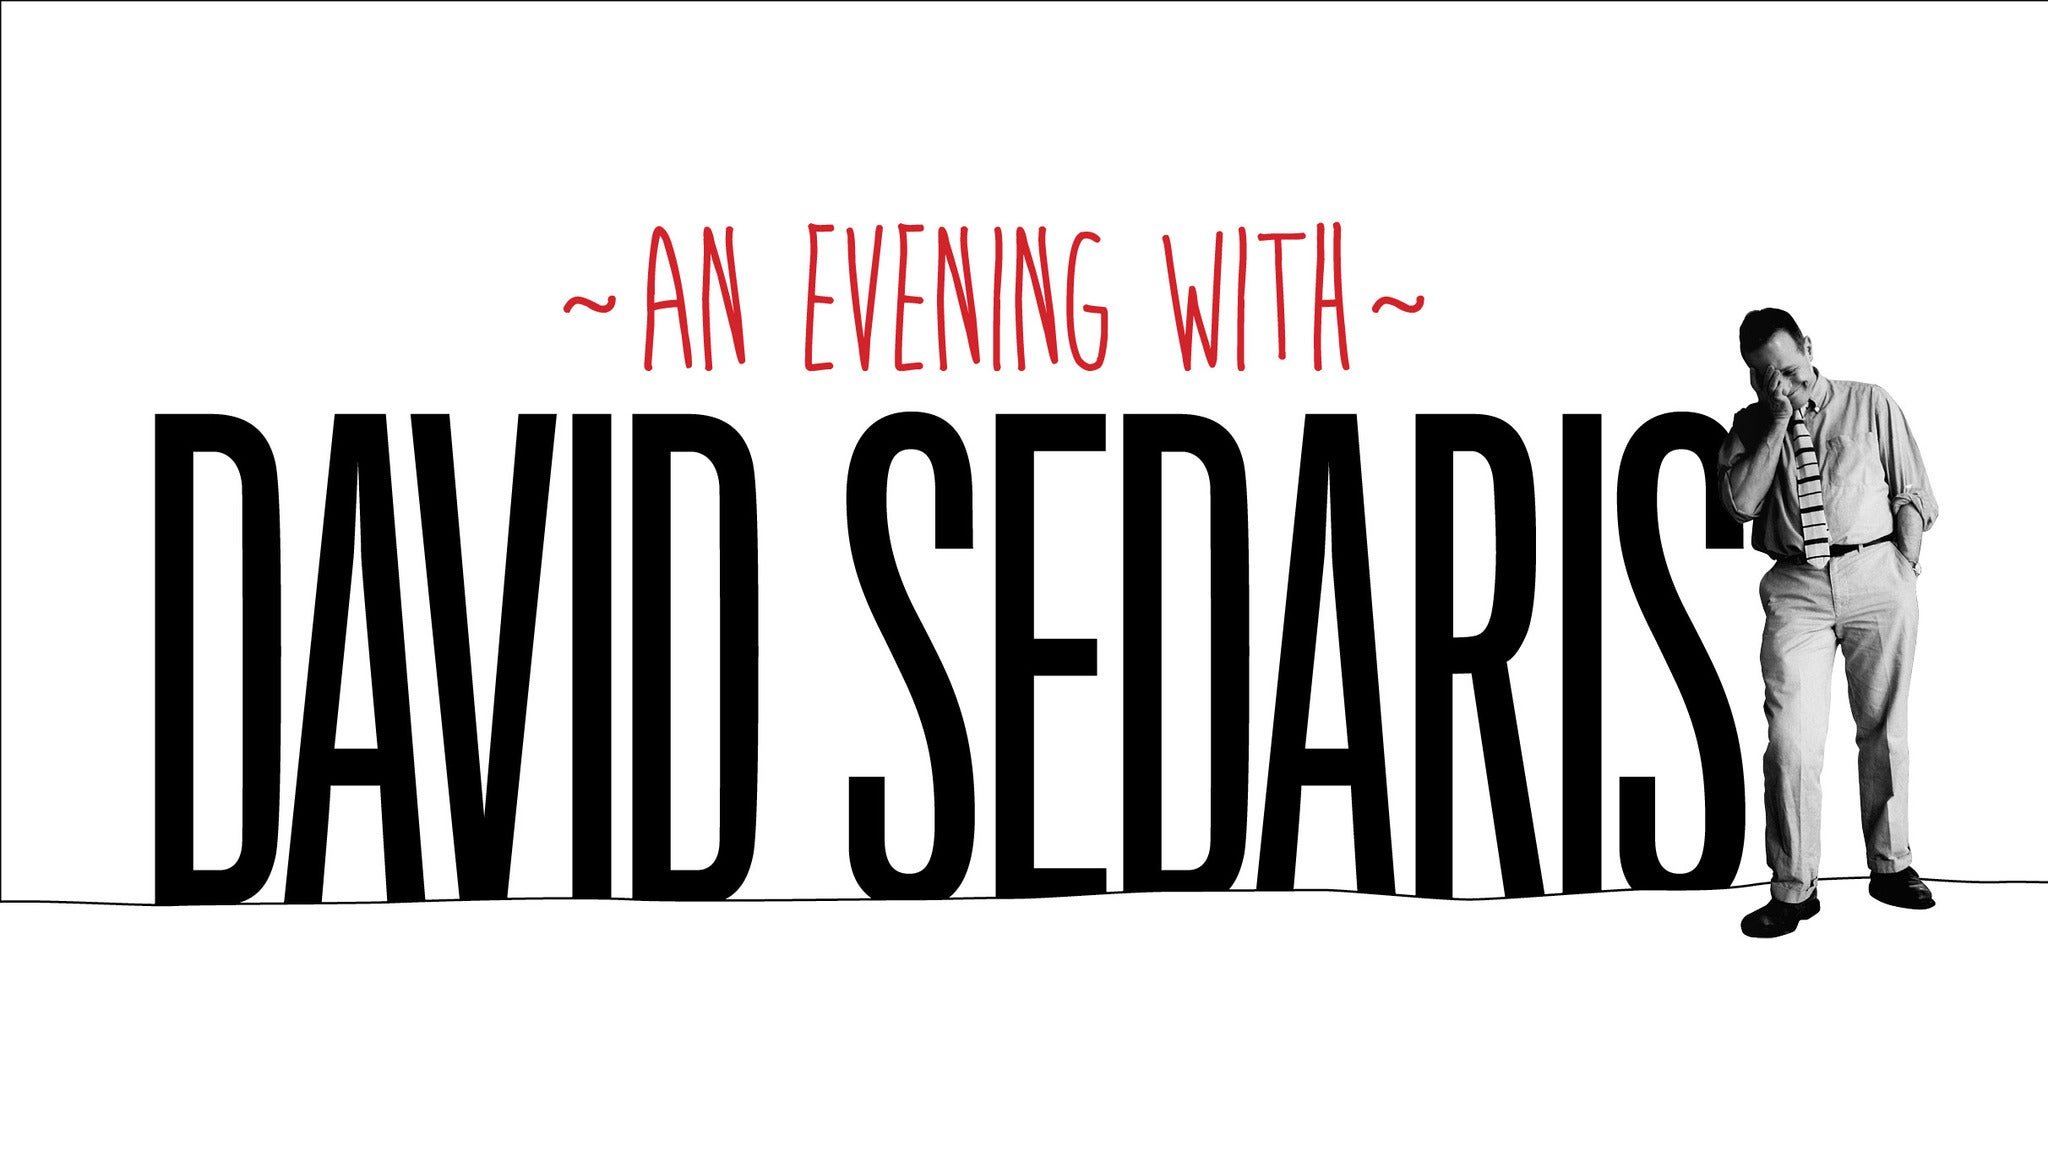 David Sedaris at Stiefel Theatre